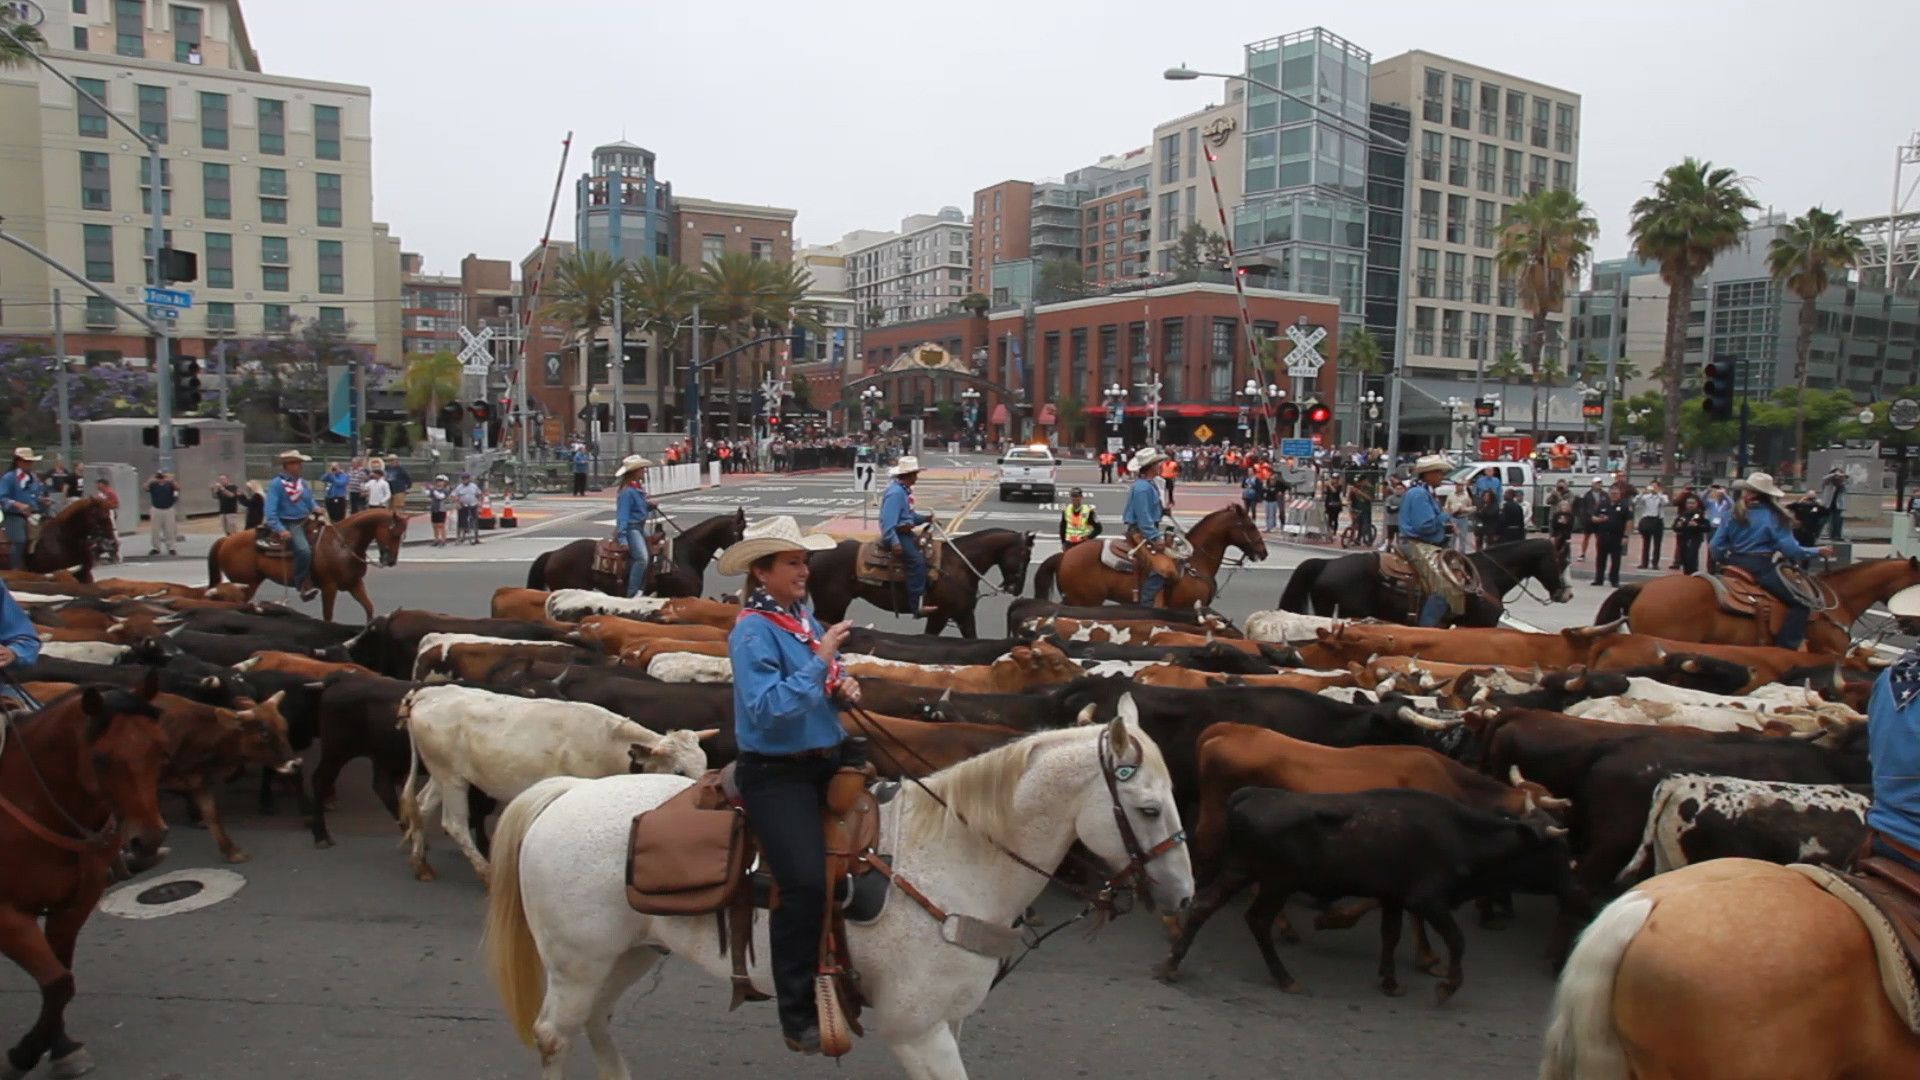 200 cows take over downtown San Diego streets in historic cattle drive - The San Diego Union-Tribune